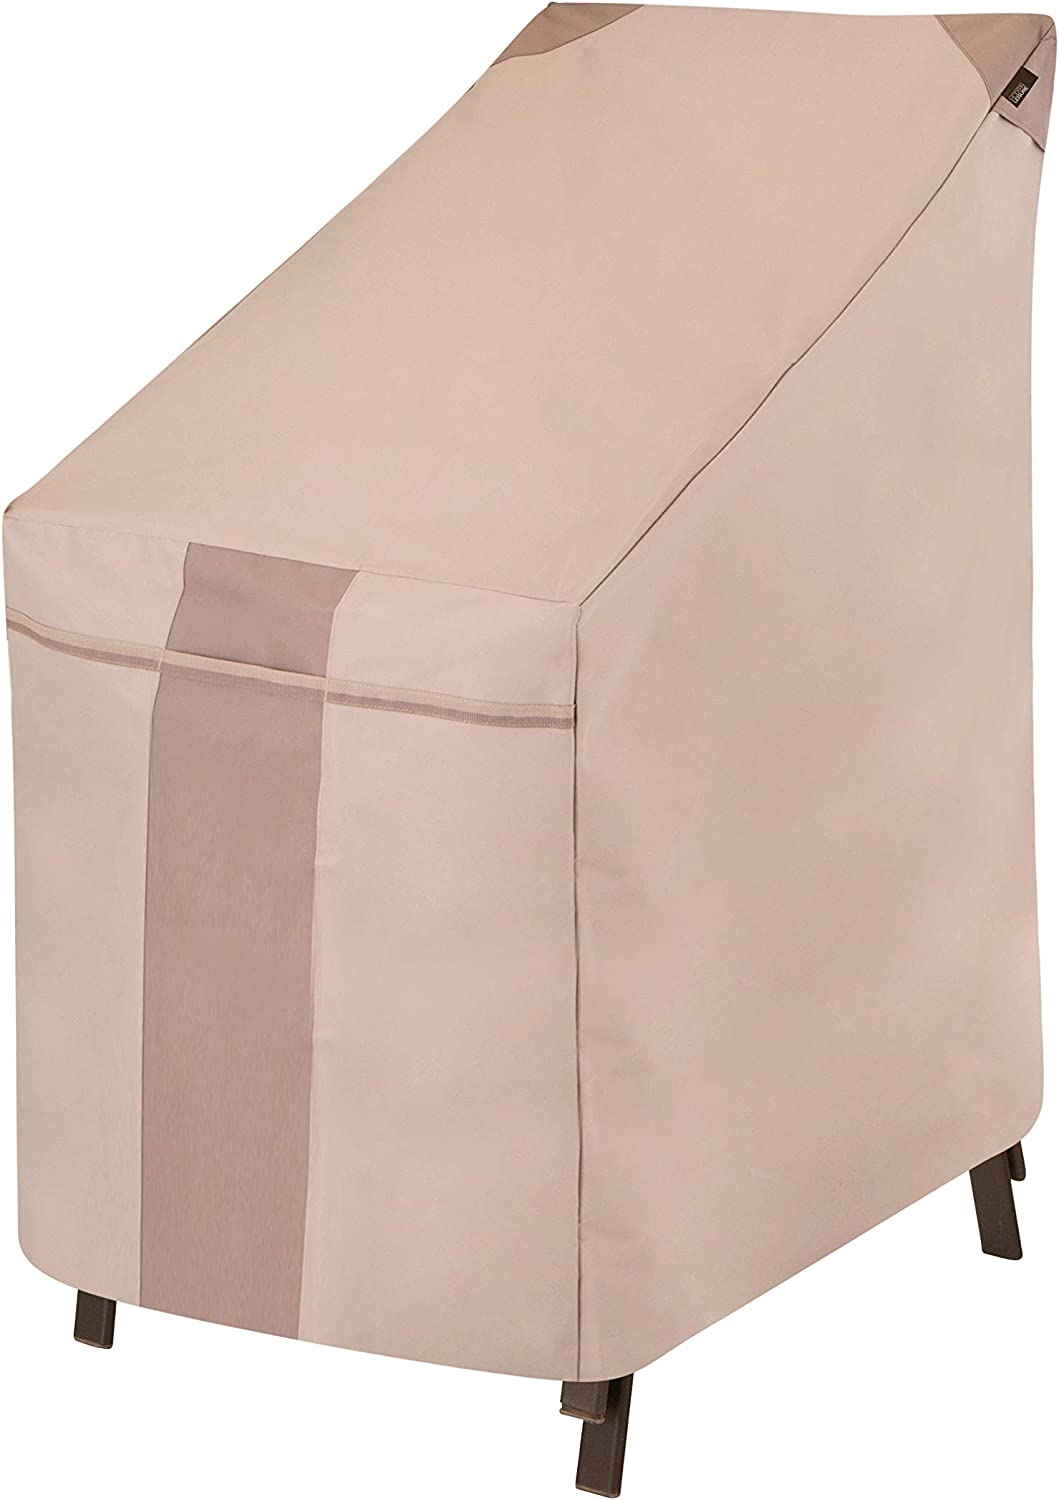 Modern Leisure 2900 Monterey Stacking Patio Chair Cover (25.5 L x 35.5 D x 45 H inches) Water-Resistant, Khaki/Fossil